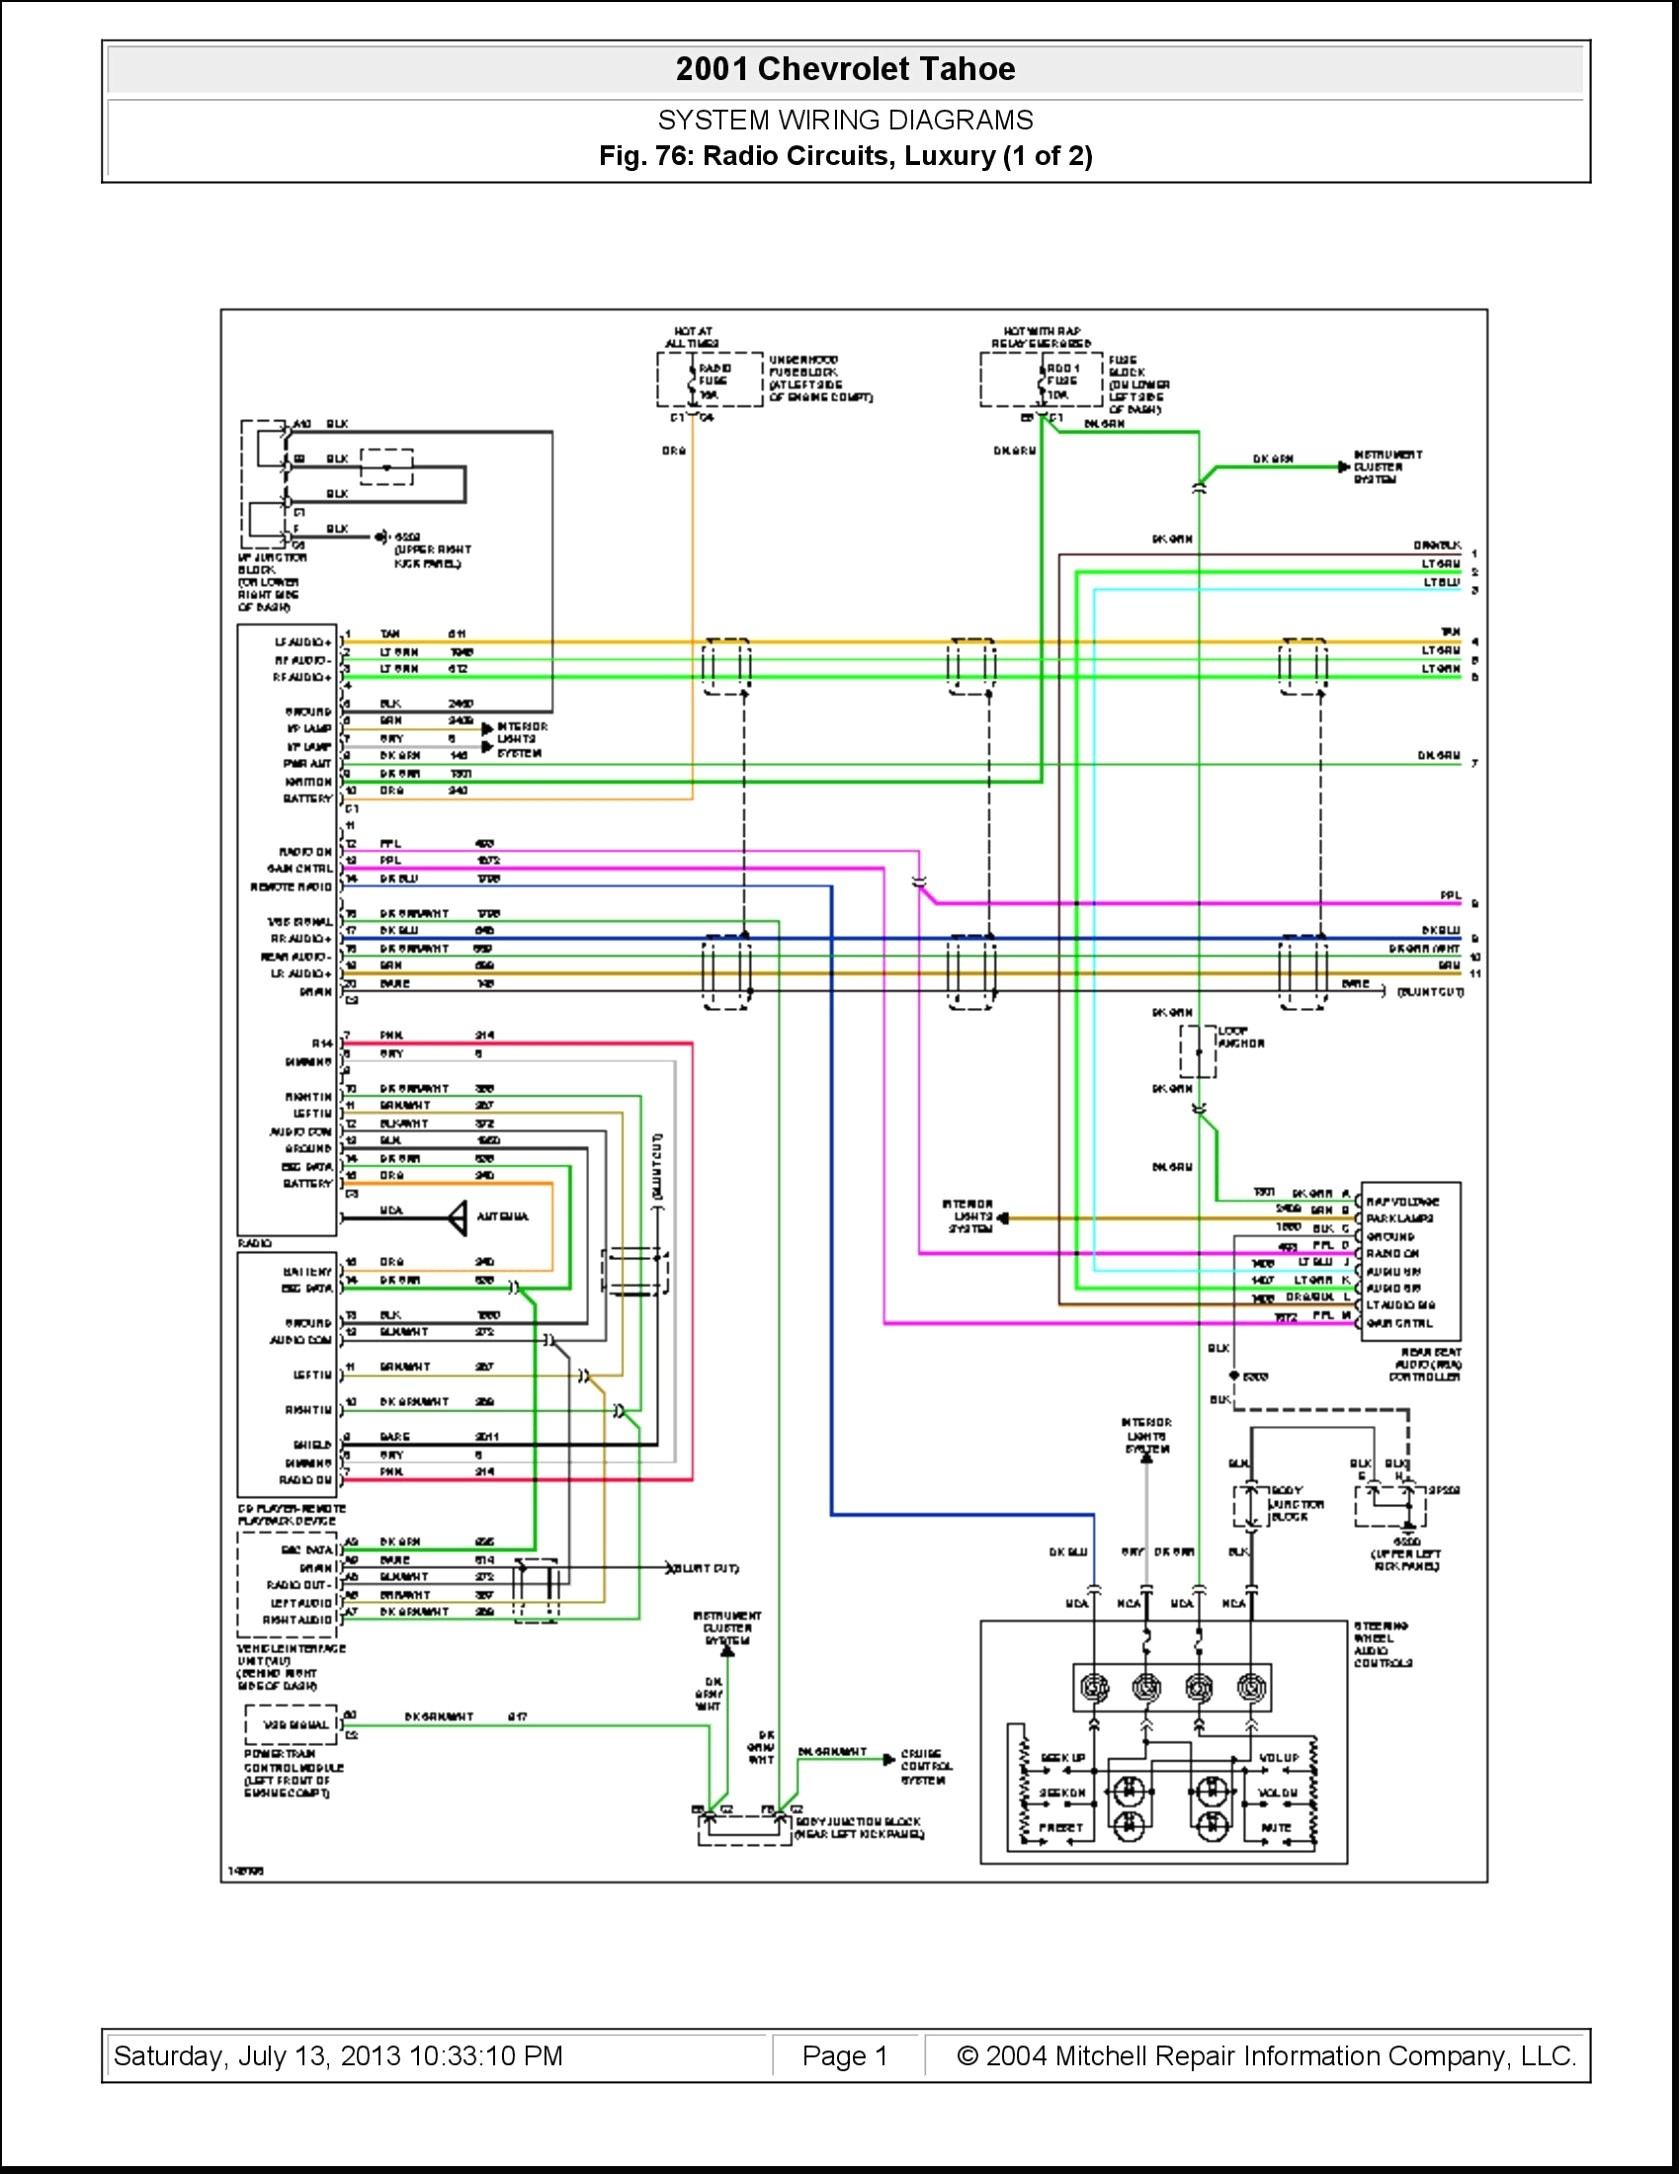 5D3A 2004 Chevy Aveo Engine Diagram | Wiring Resources Kia Sportage Fuel Pump Wiring Diagram on kia sportage oil pump, kia sportage starter location, kia sportage gas tank filter, kia sportage replacement parts,